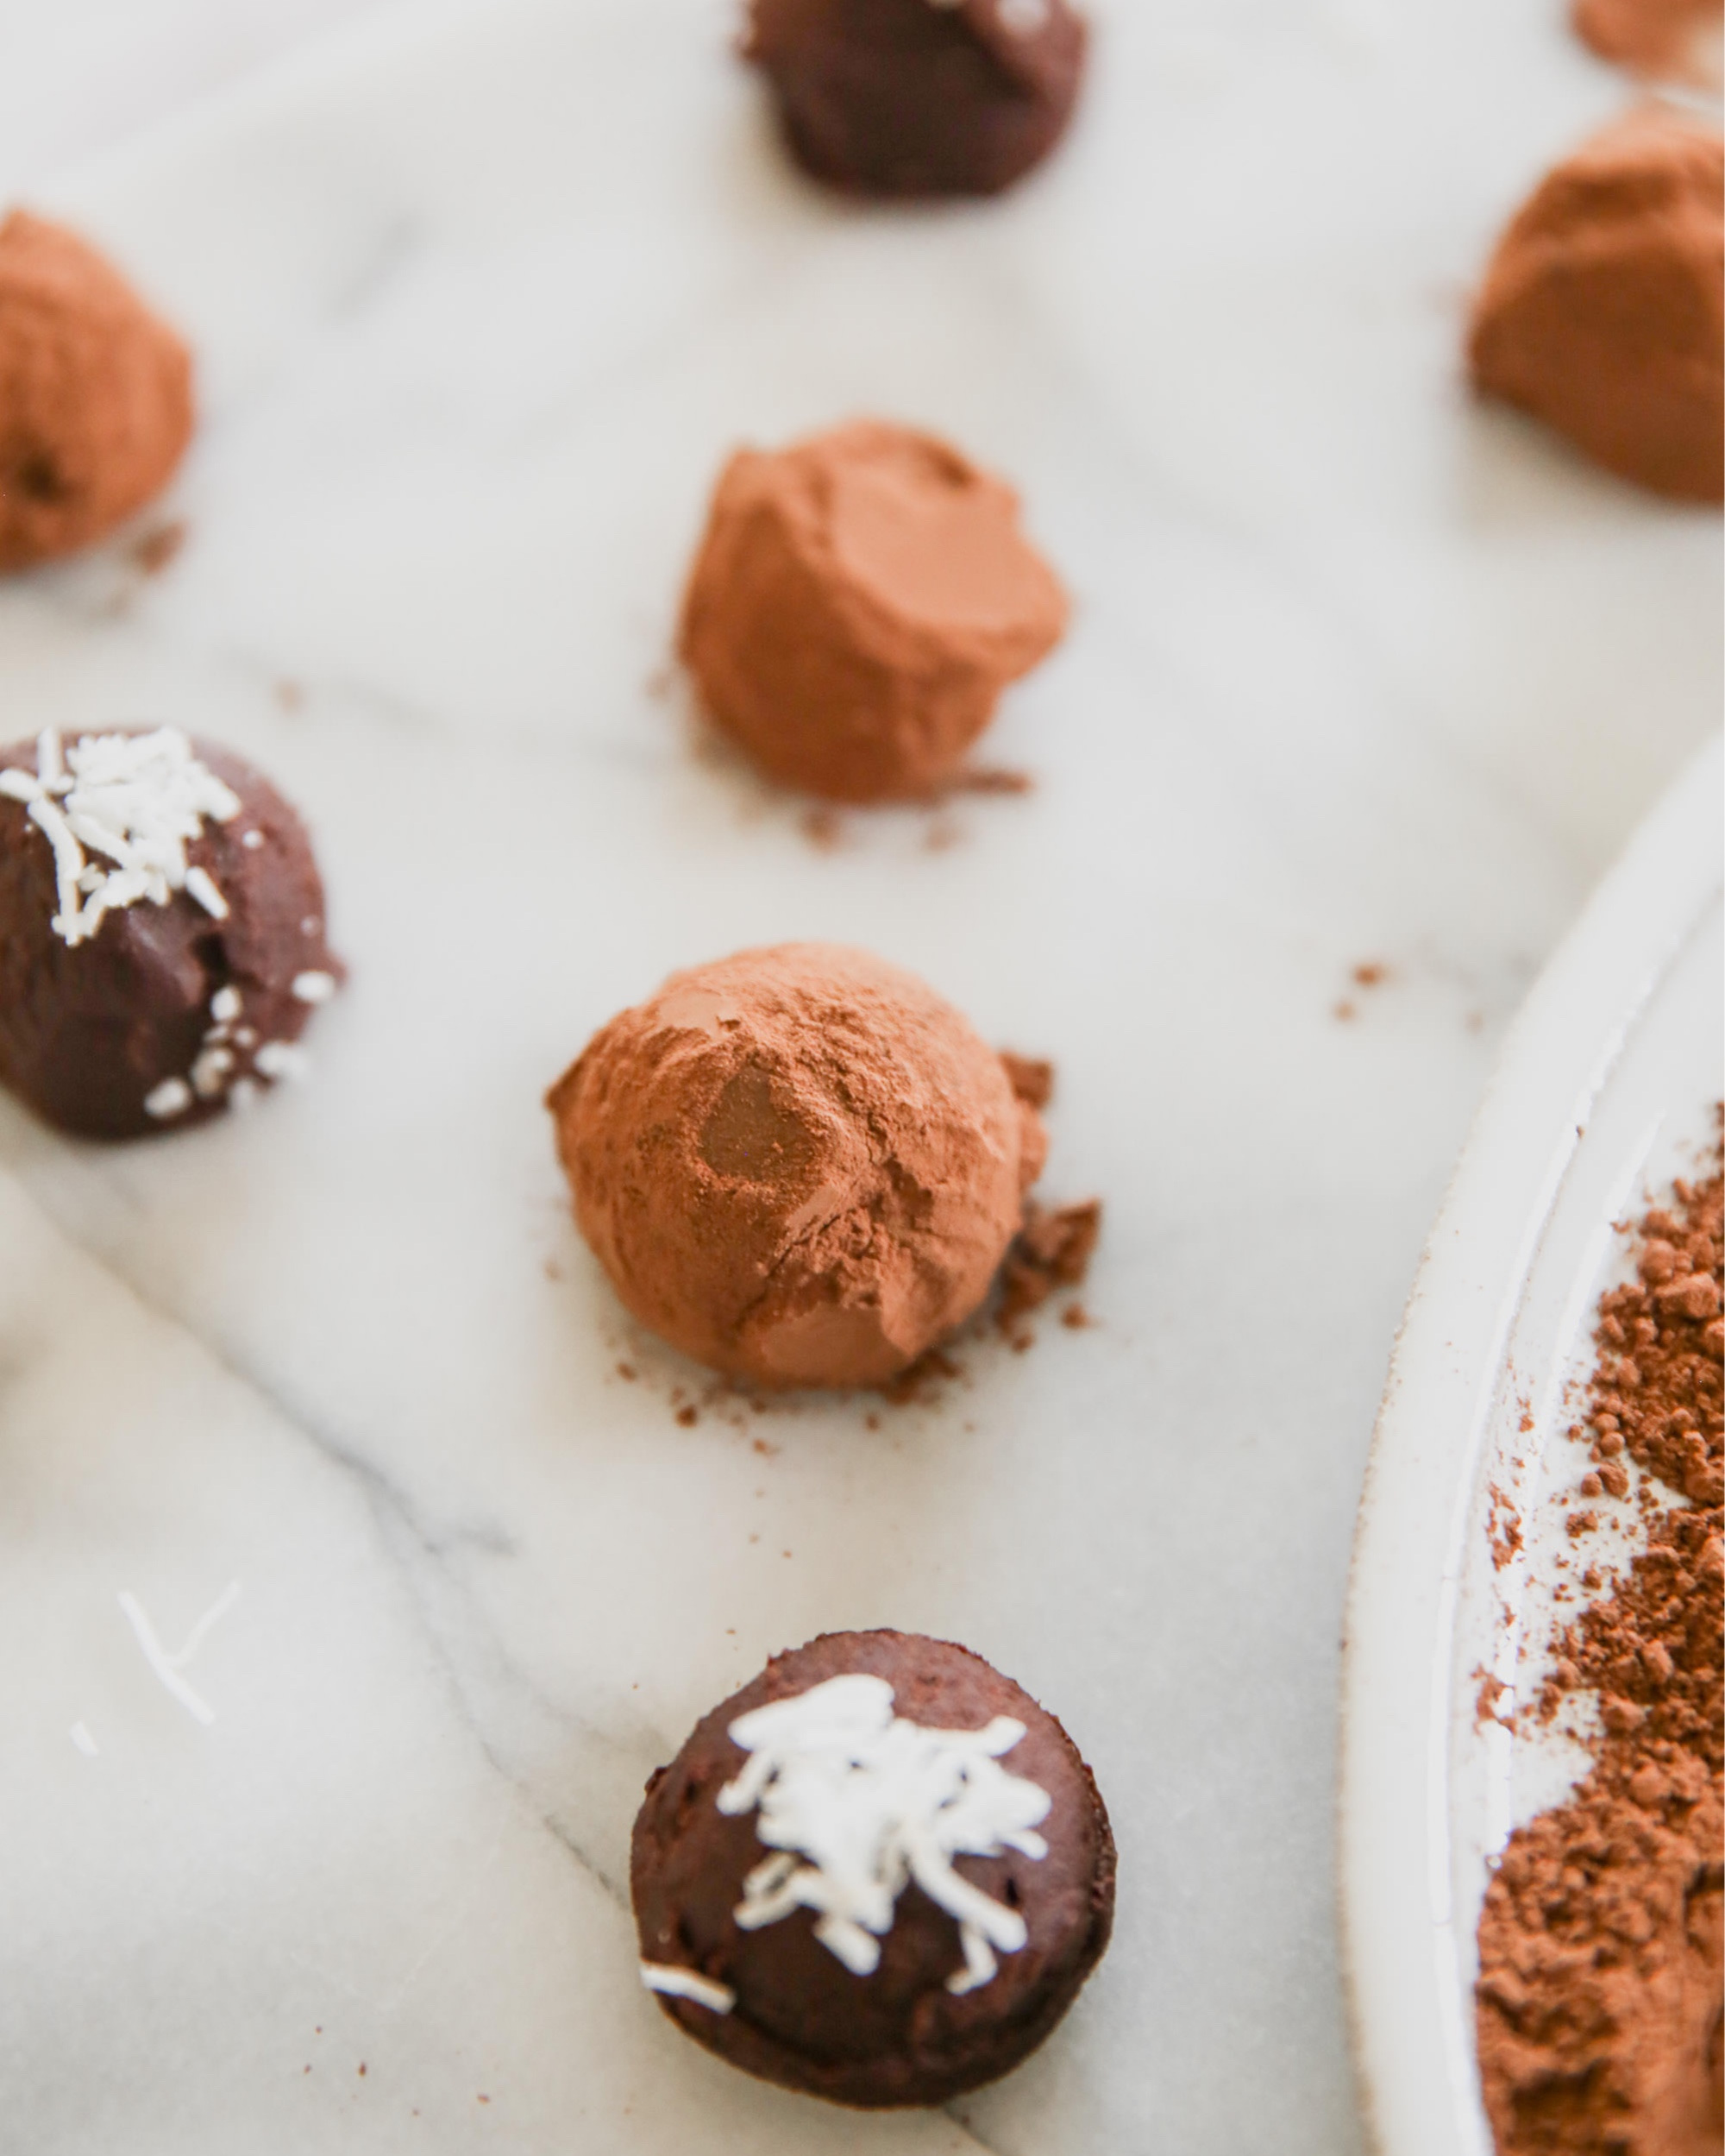 Chocolate Truffles Rolled In Coco Powder